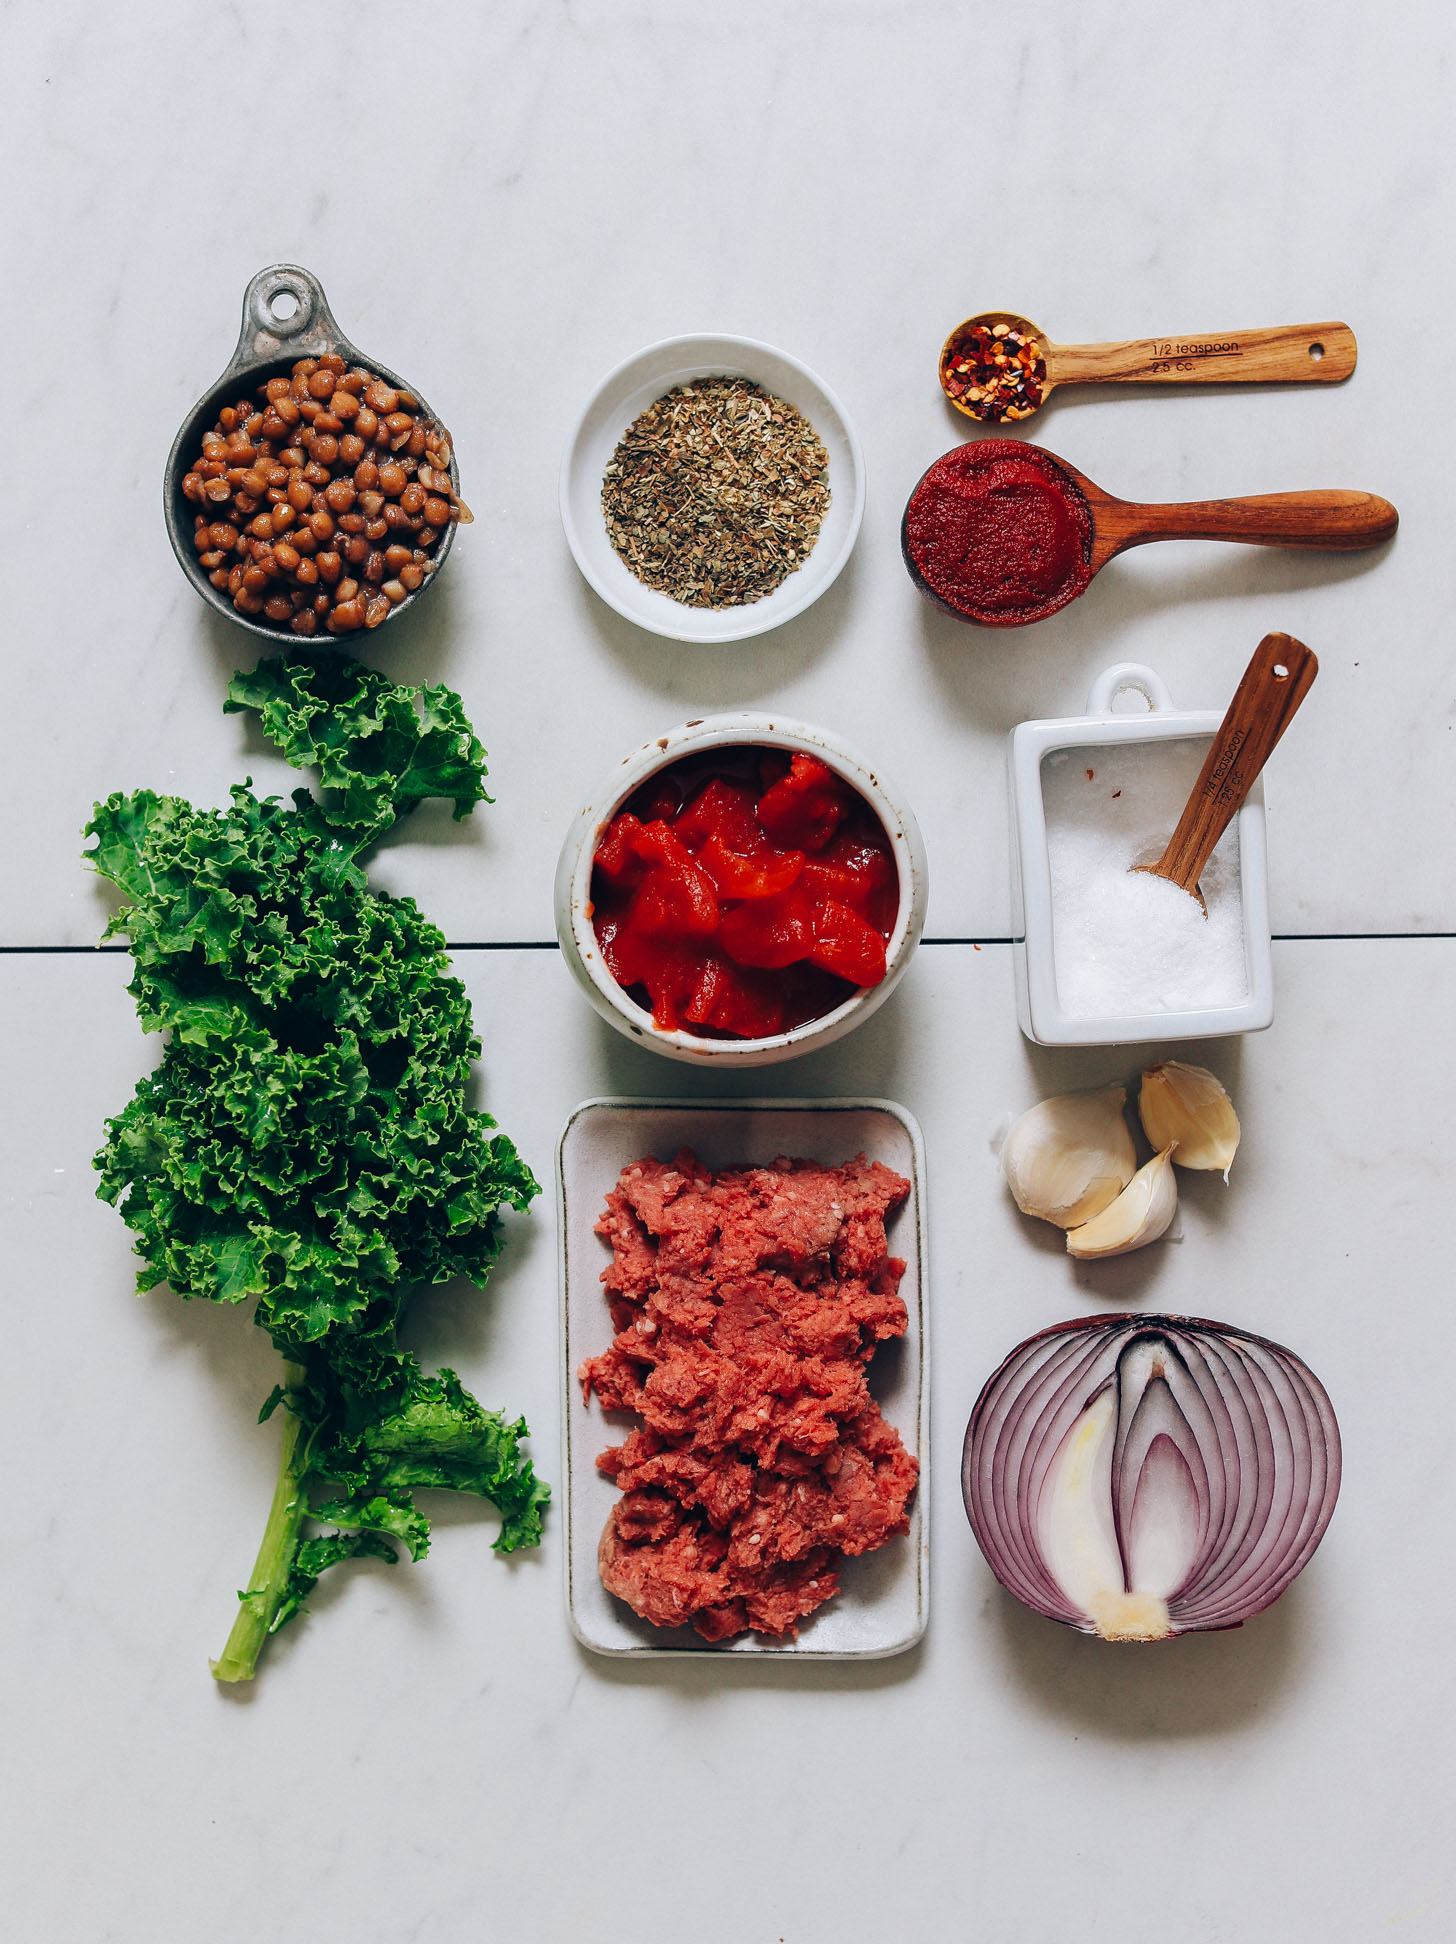 Kale, lentils, tomatoes, herbs, onion, garlic, salt, and ground beef for making our Tuscan-Style Beef & Lentil Soup.